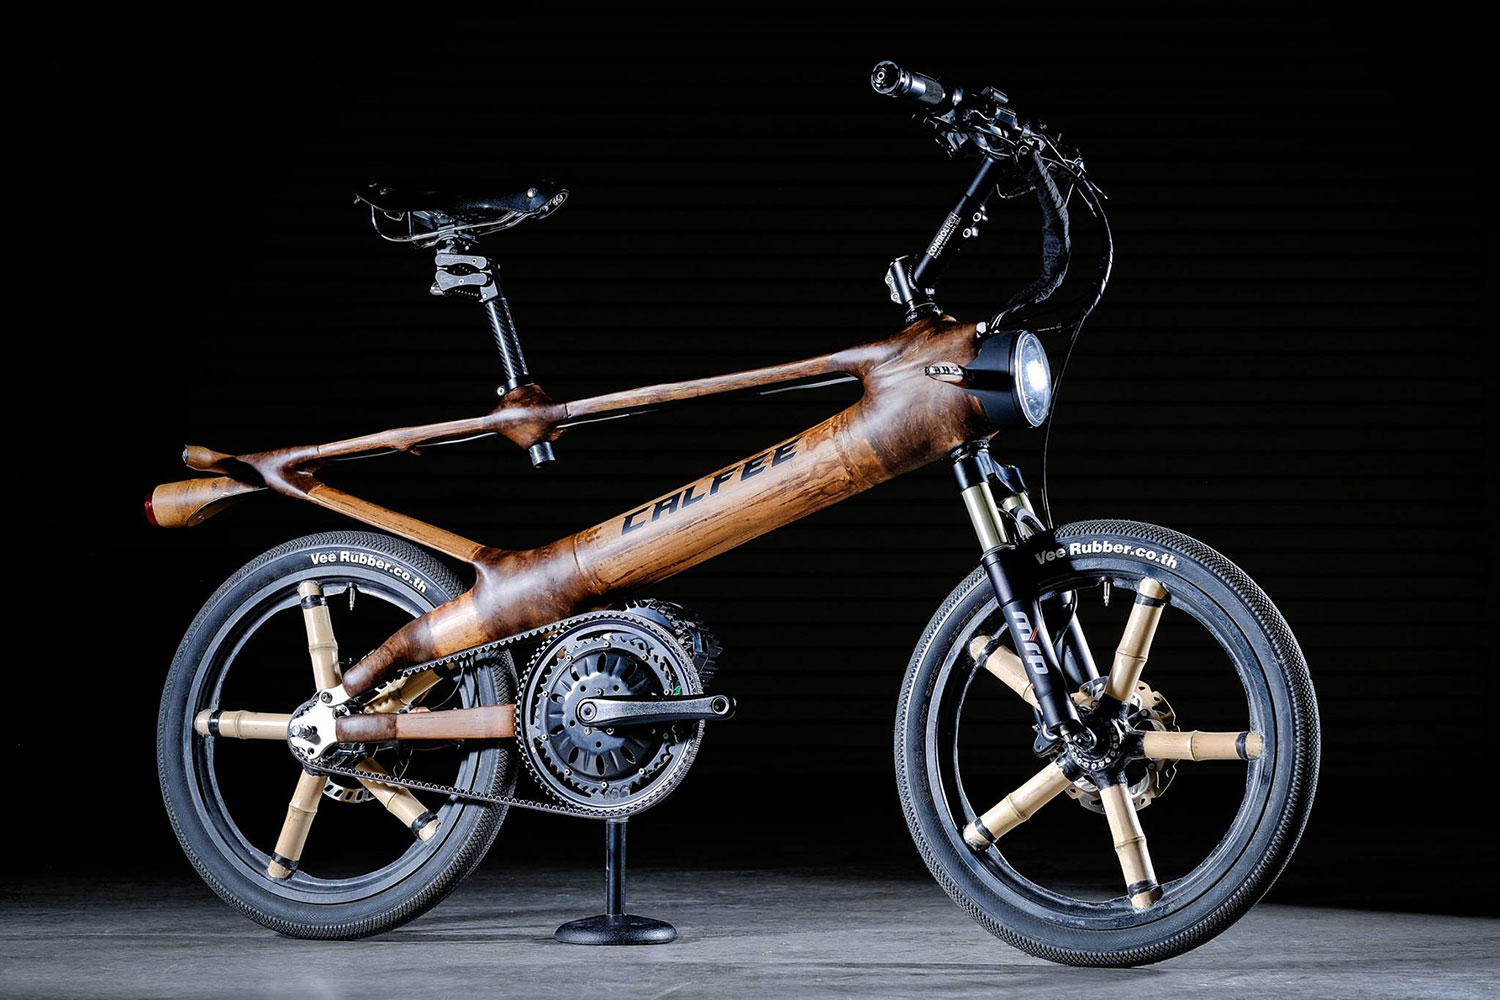 Amazing Bike Design by Craig Calfee